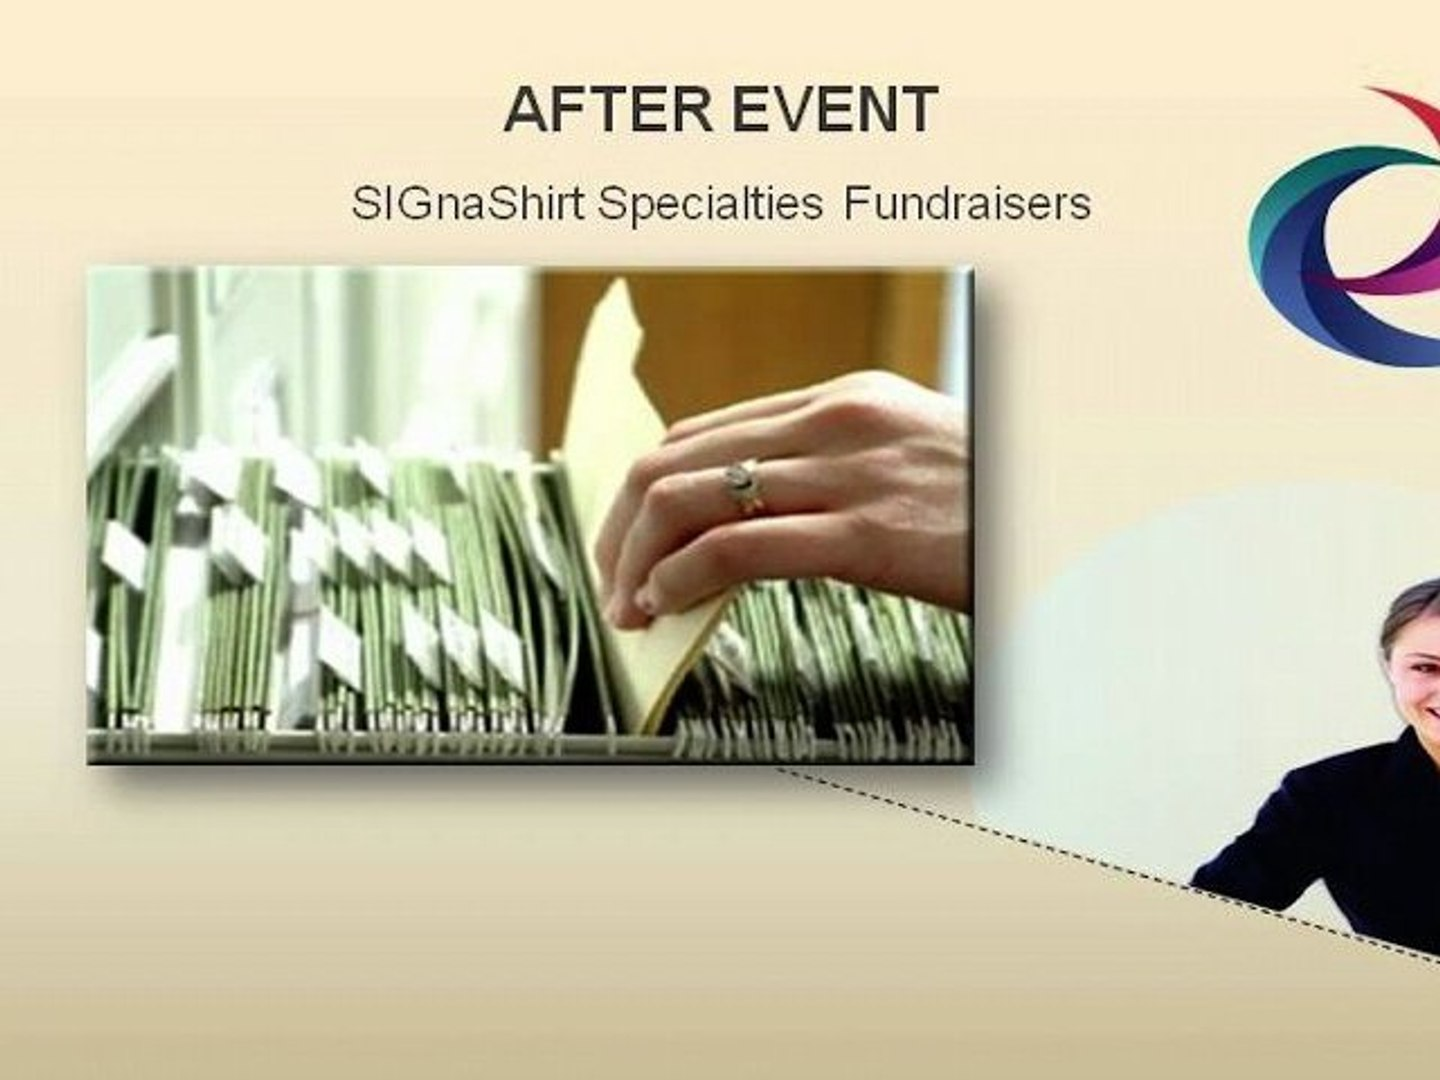 Video 22 – Catholic Church Youth Organization Fundraiser People & Blogs Record-Keeping